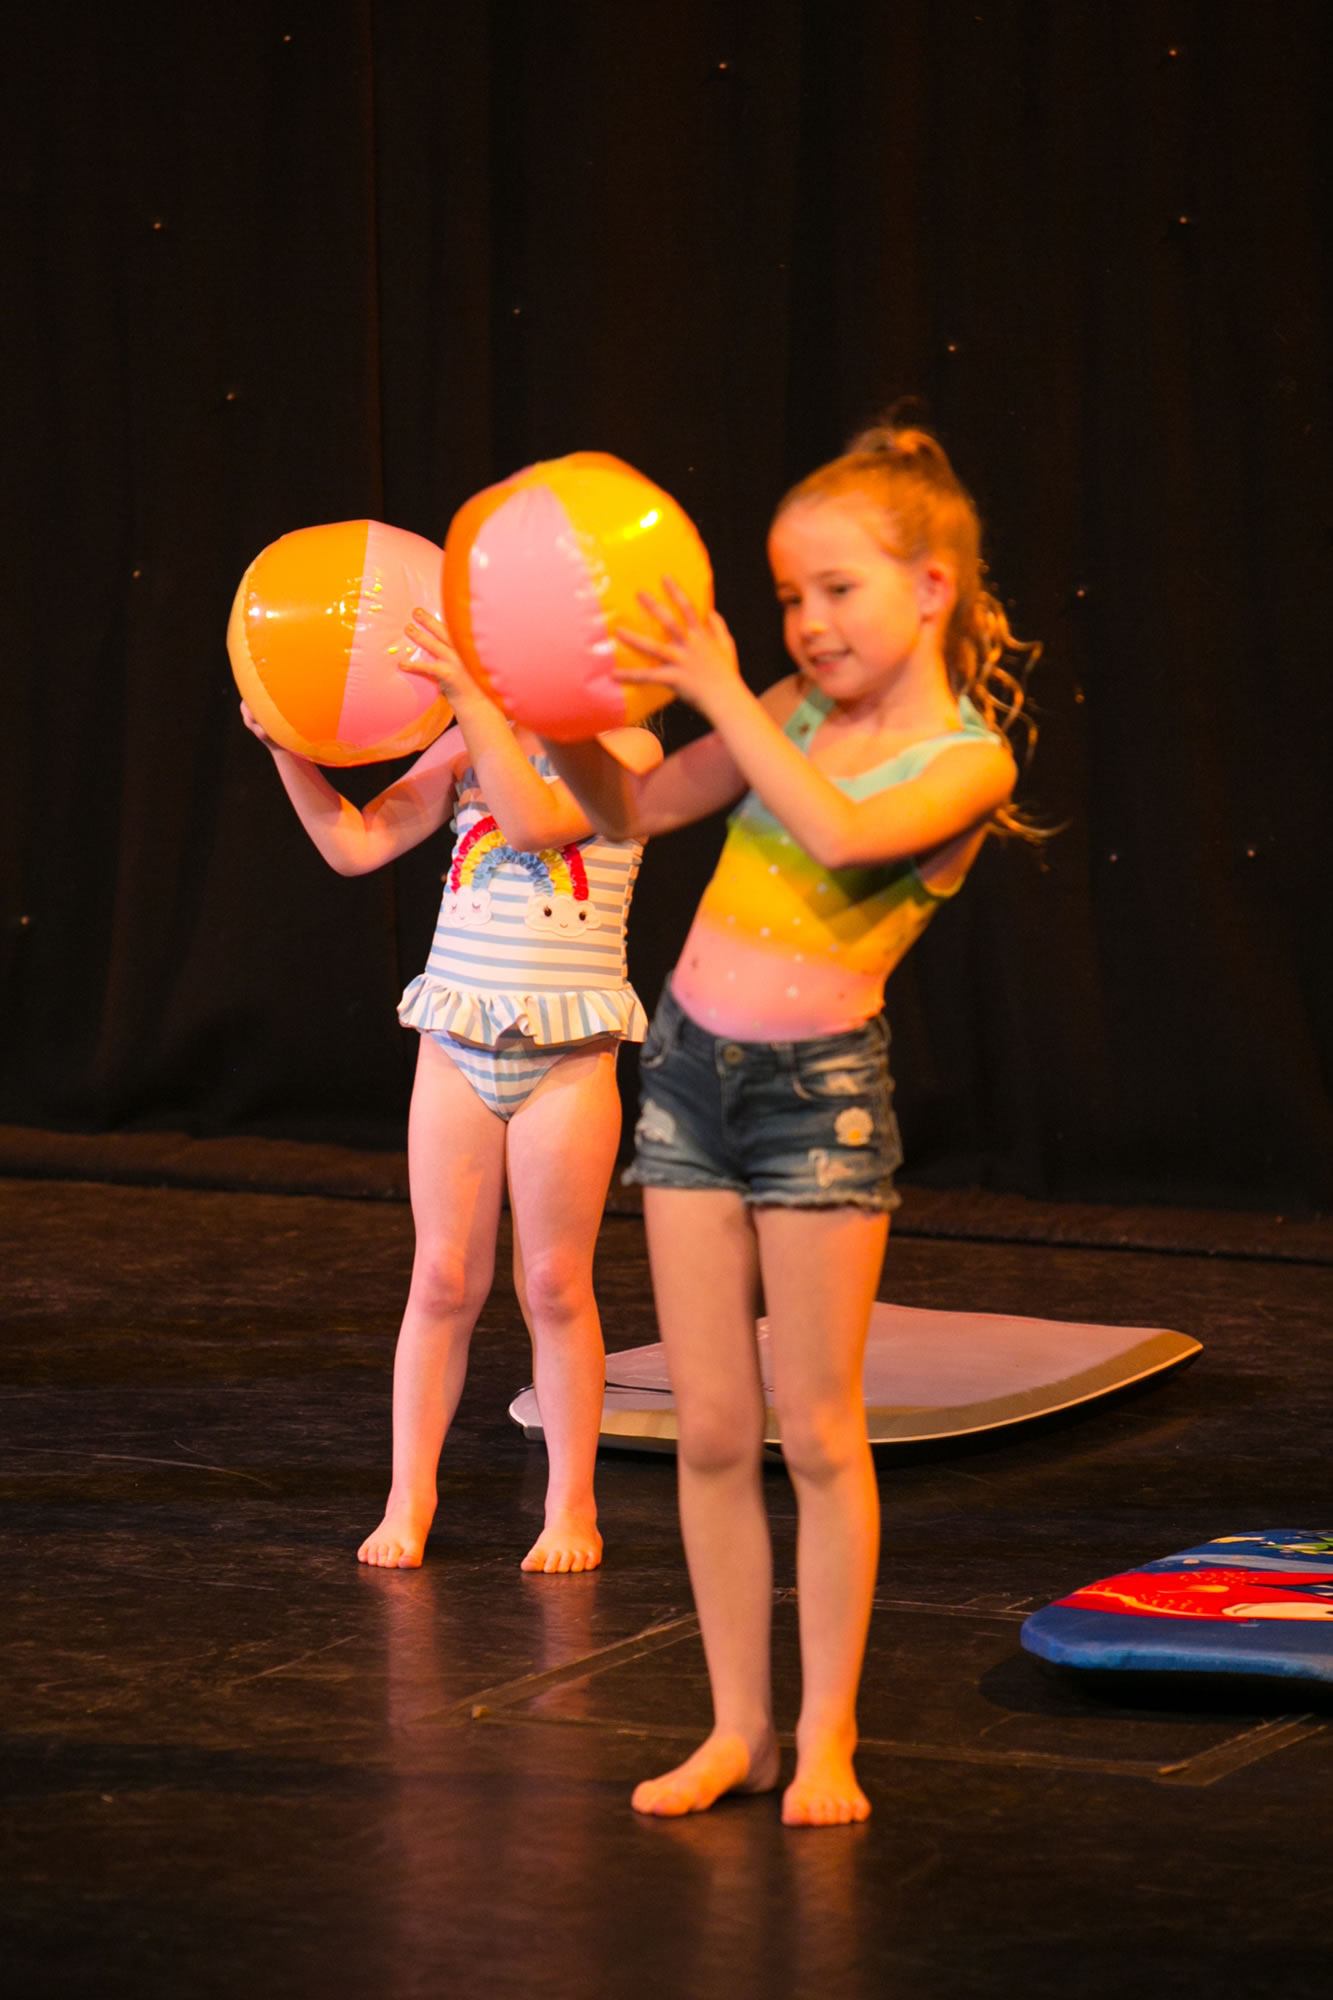 Hitchin_School_of_Dance_Show_2019-SM1_2032.jpg